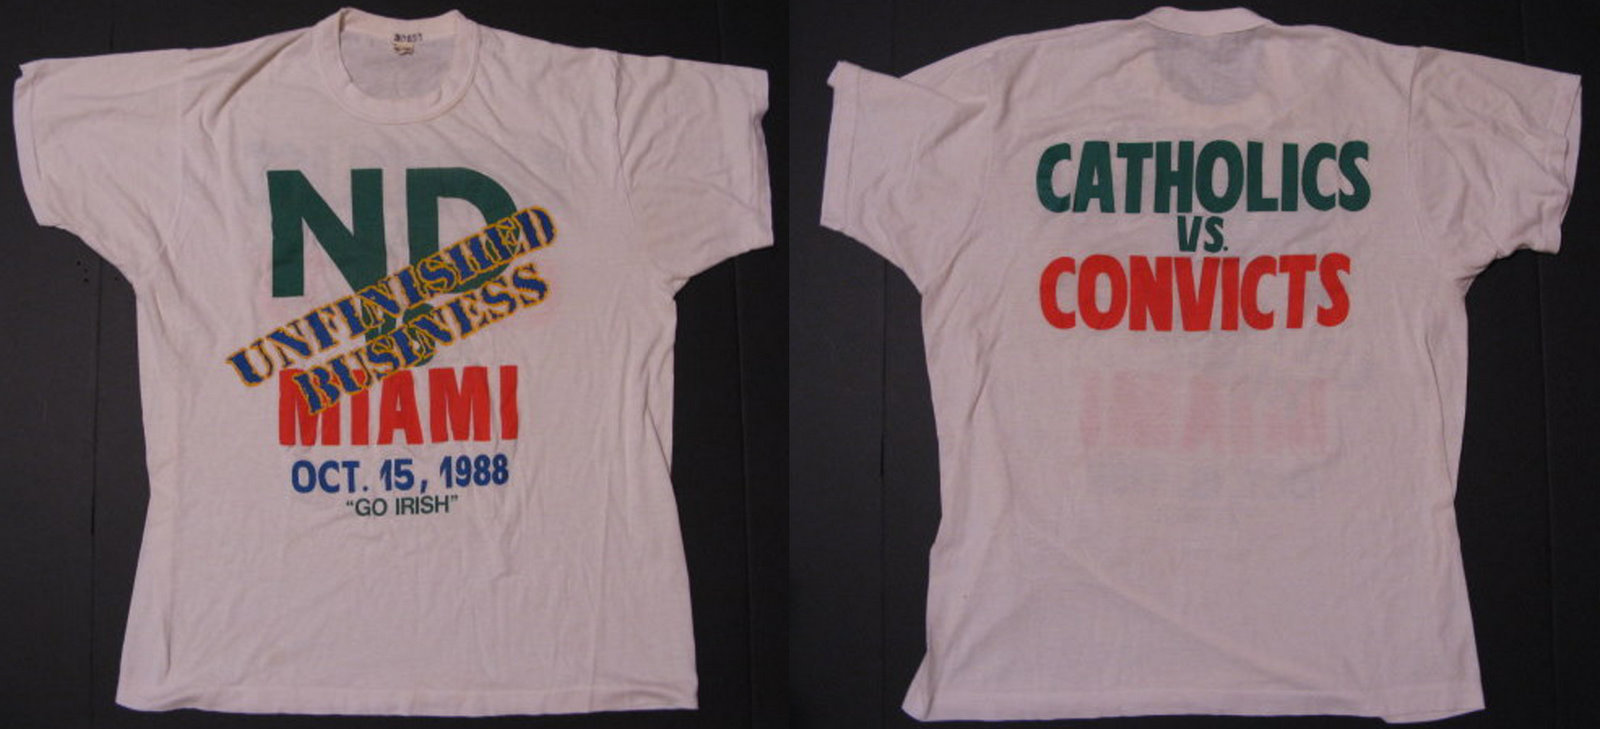 Who Designed The Catholic Vs Convicts T Shirt